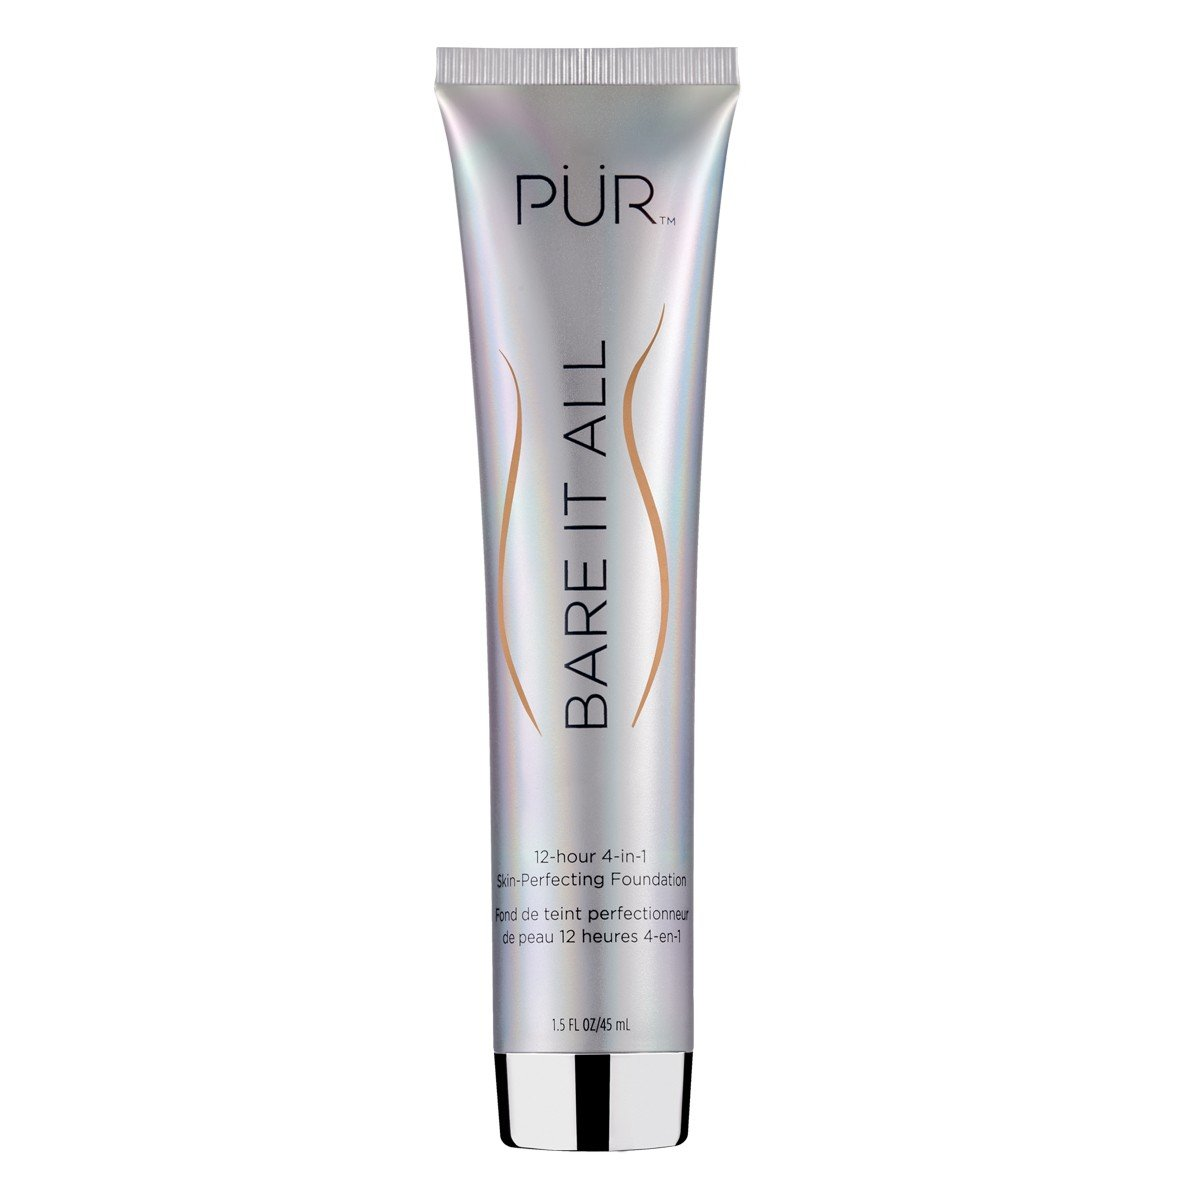 PÜR Bare It All 4-in-1 Skin-Perfecting Foundation Light Tan, 1.5 Fl Oz